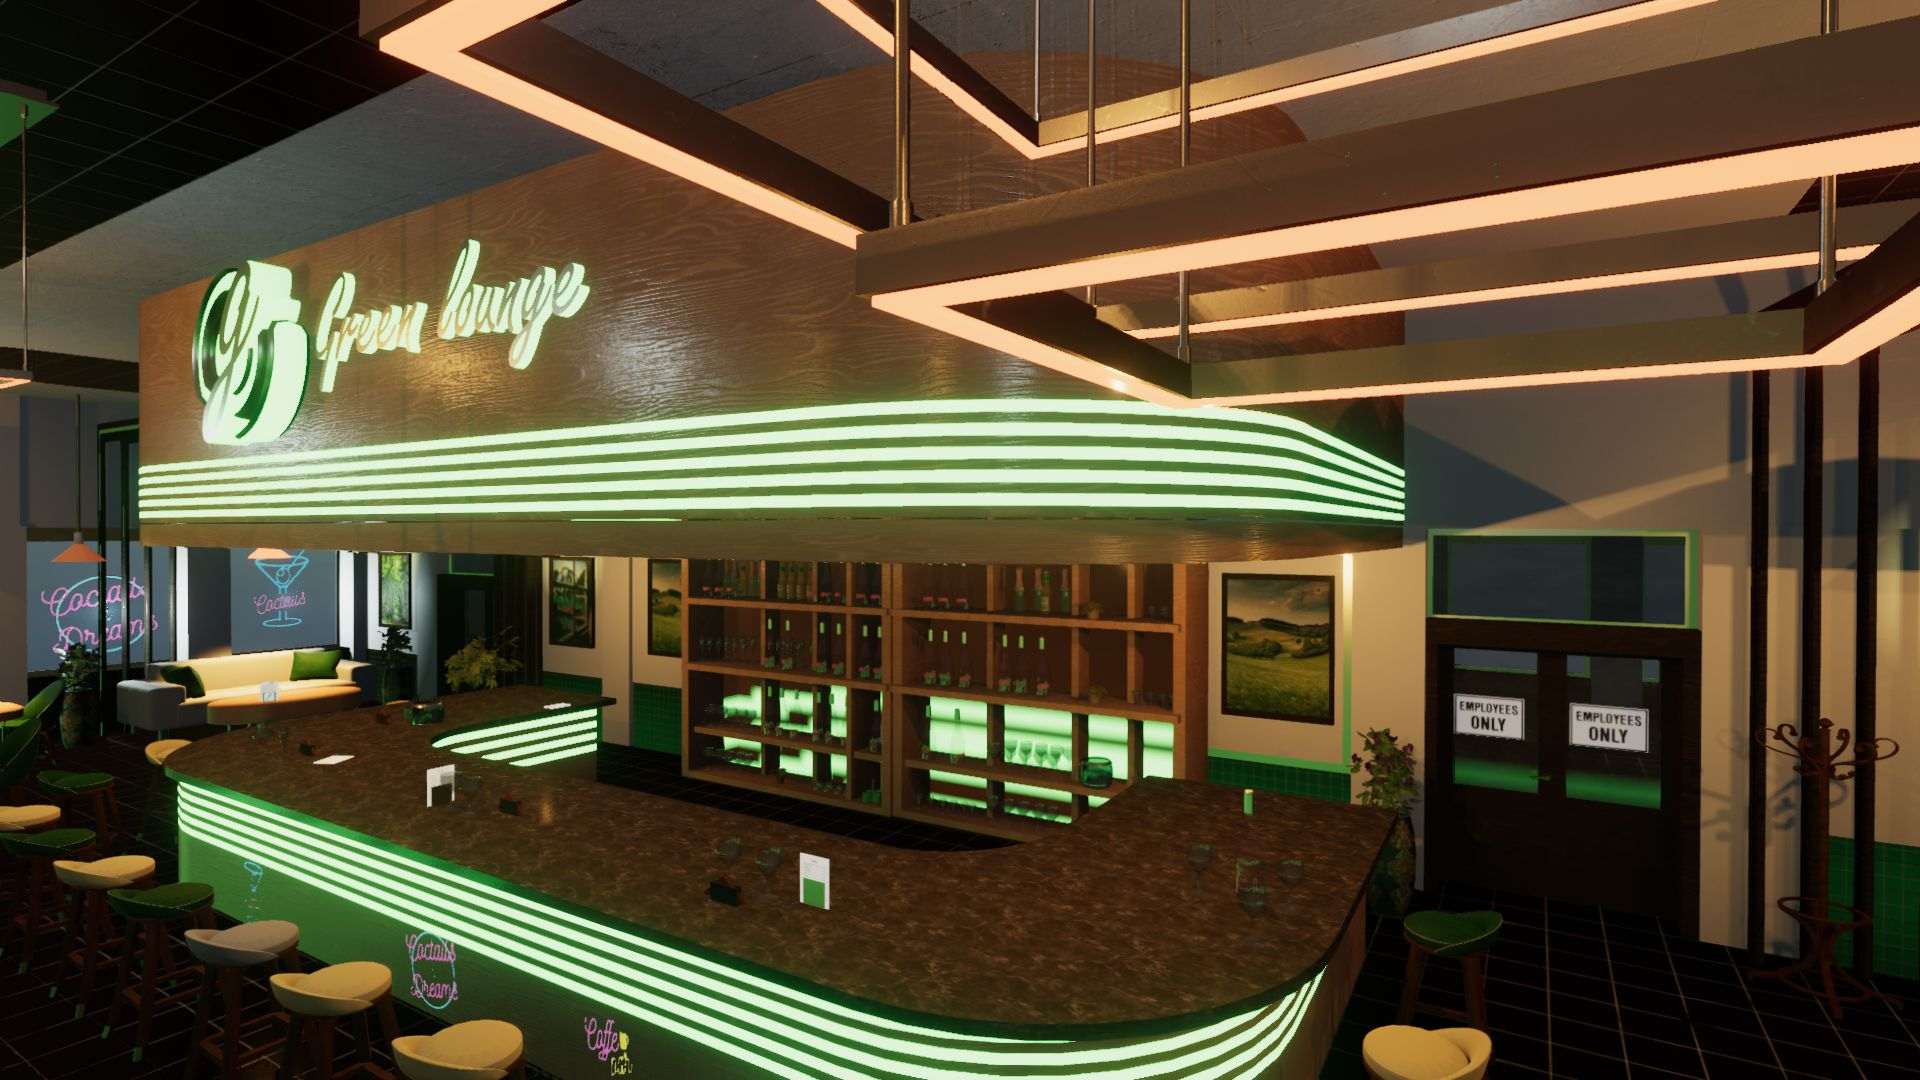 An image showing Green Lounge asset pack, created with Unity Engine.